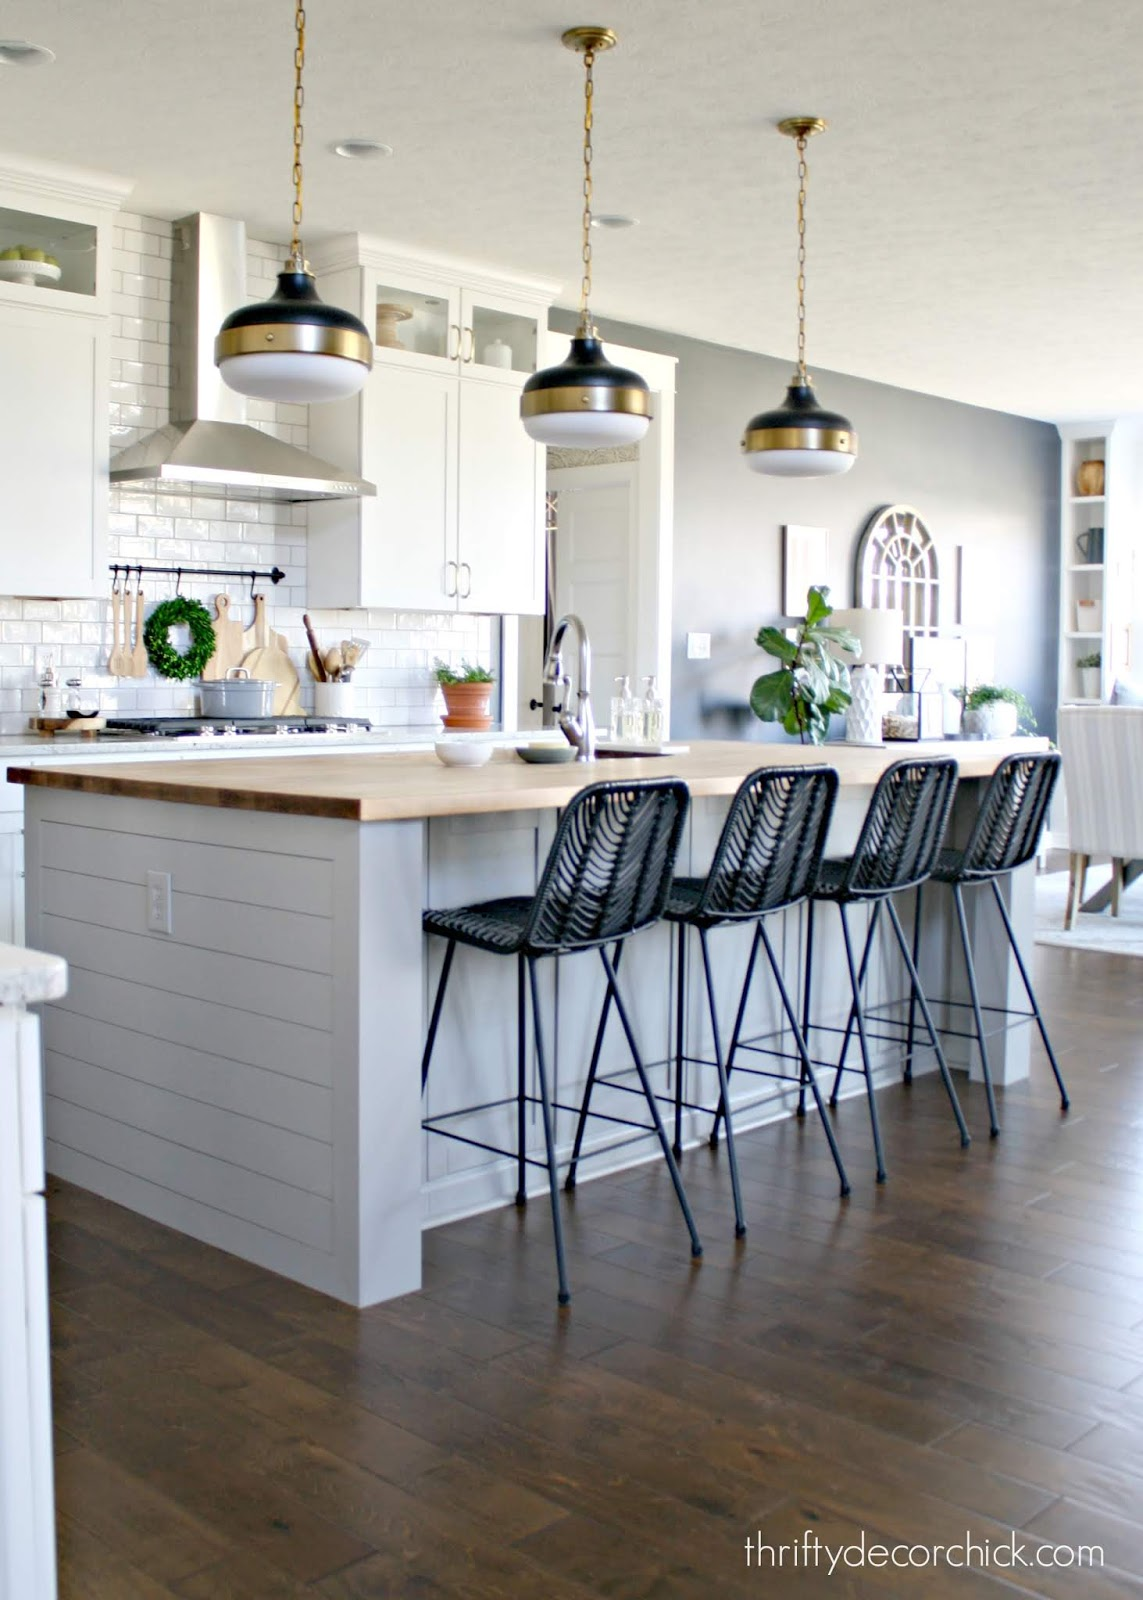 Stools Kitchen Islands The Best Place For A Huge Selection Of Kitchen Stools And Chairs